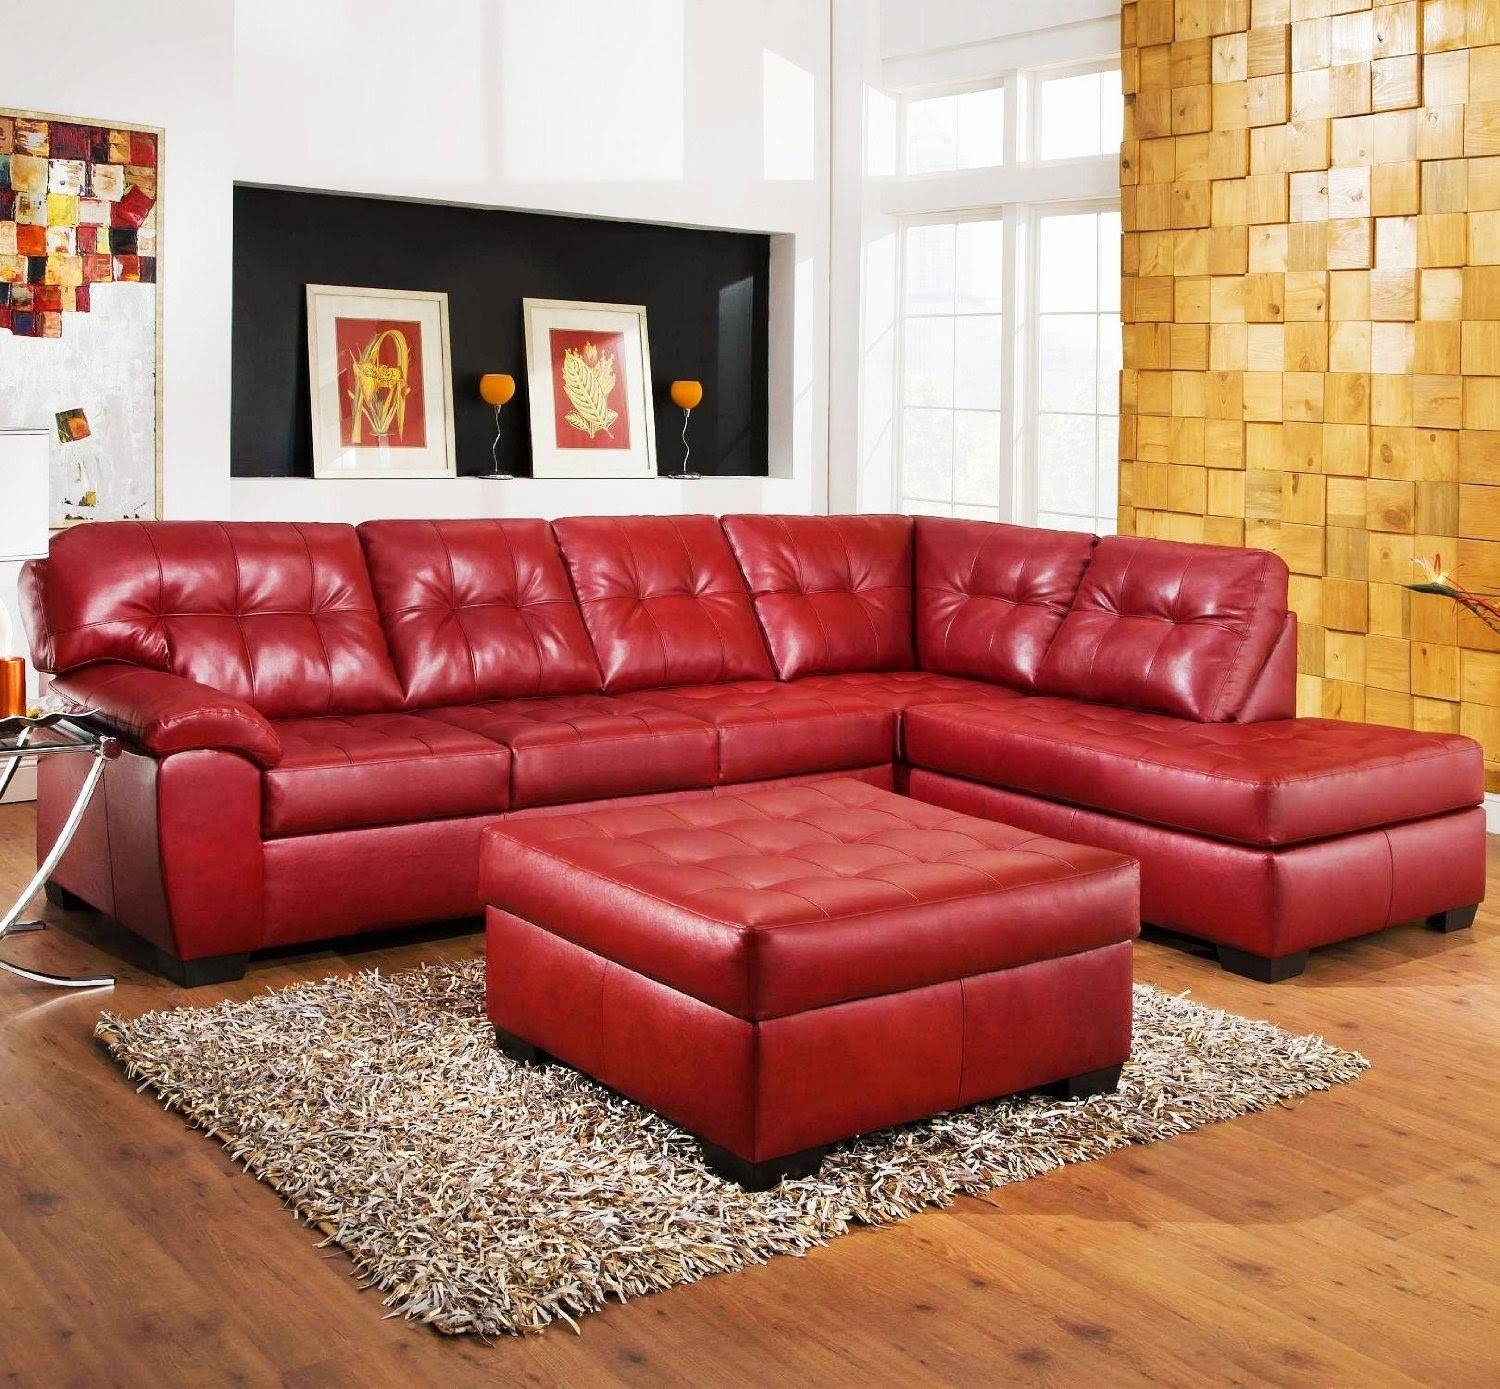 Red Sectional Sleeper Sofa - Tourdecarroll pertaining to Red Sleeper Sofa (Image 22 of 30)